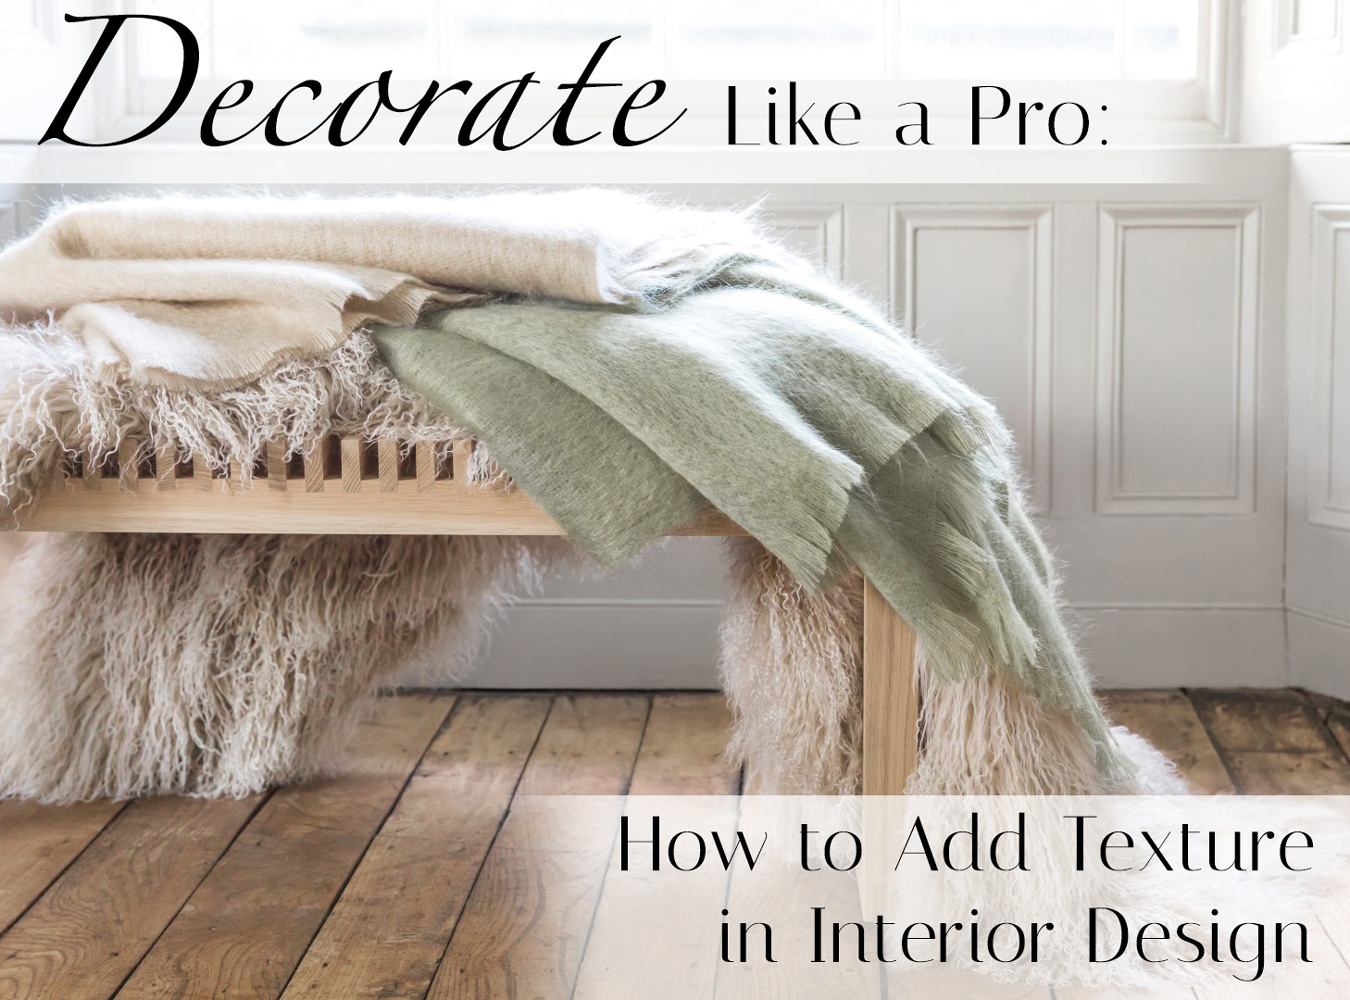 Decorate like a pro how to use texture in interior design